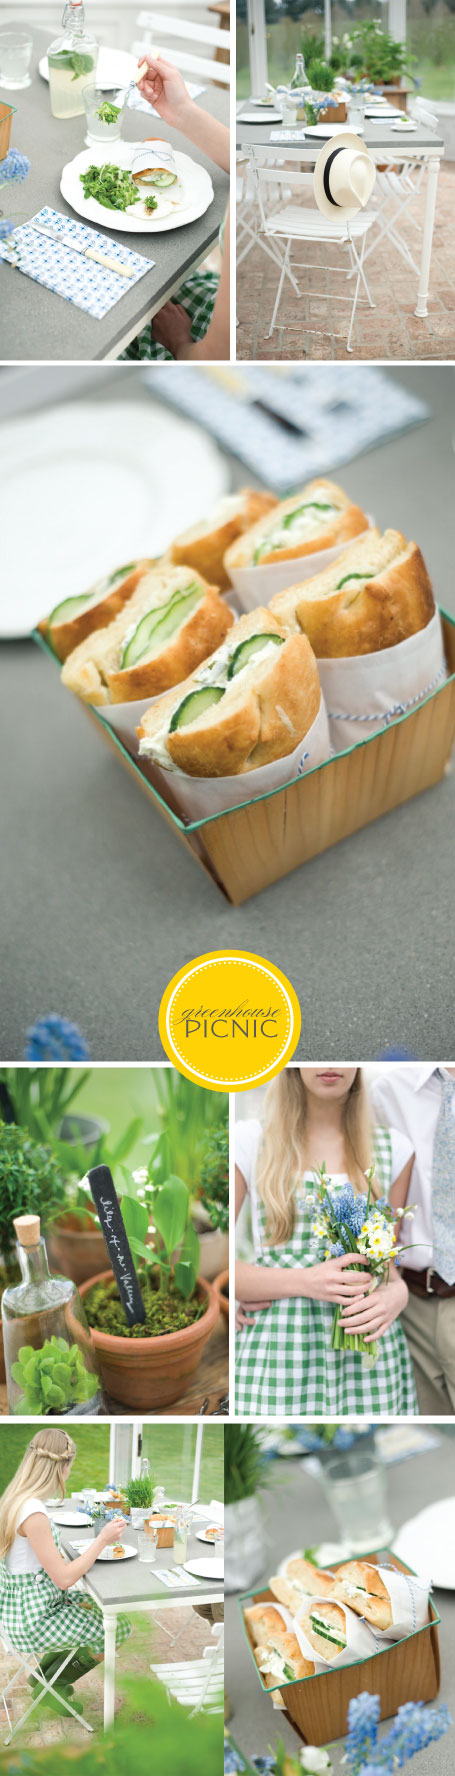 Love these ideas for picnics...